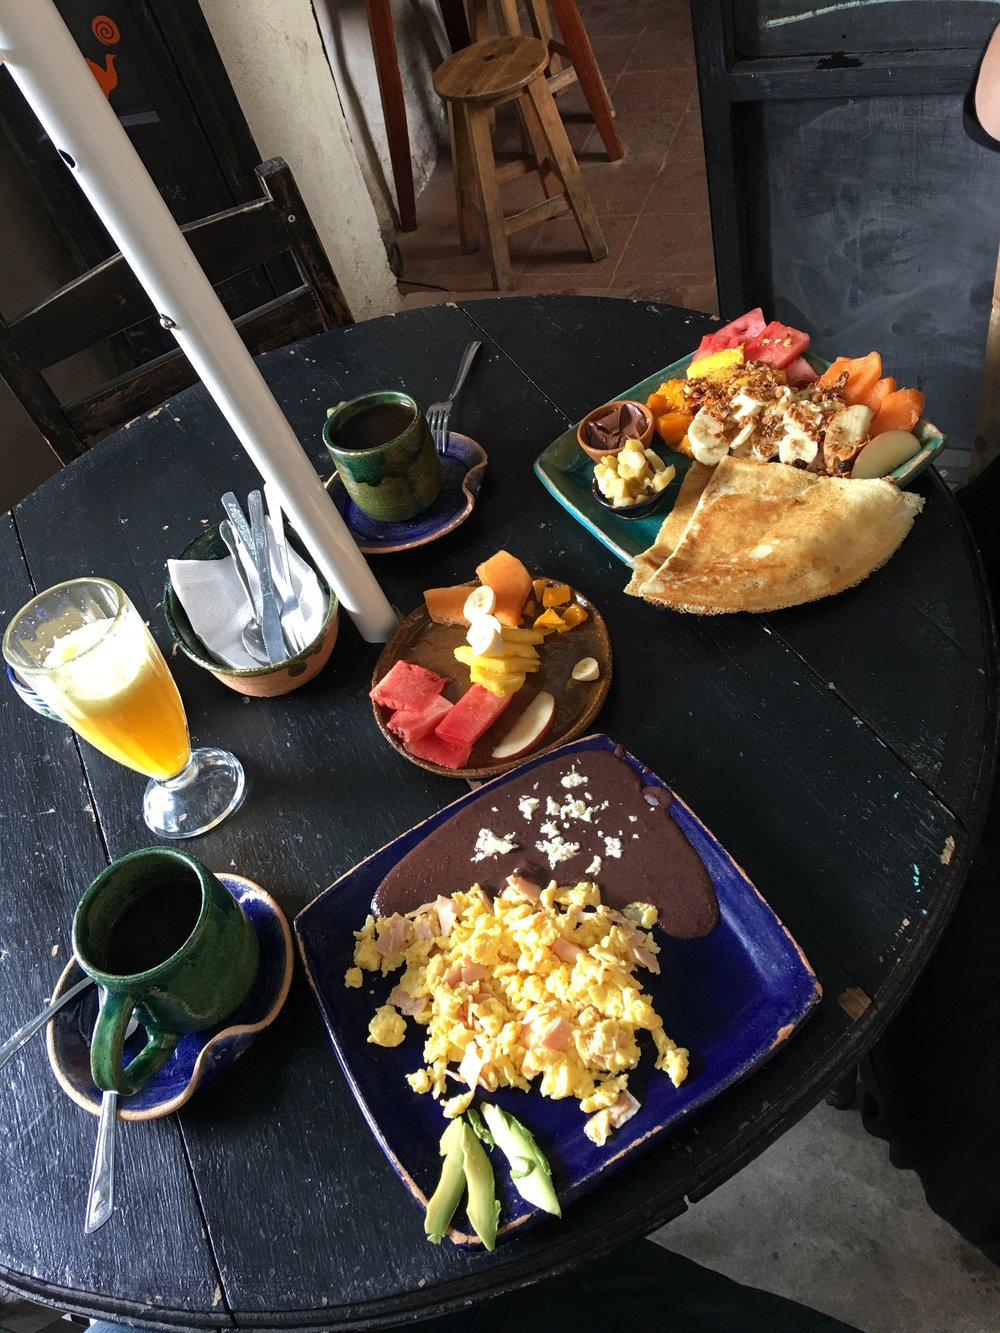 This was our last breakfast at our favorite little cafe, Oscuro Brebaje.  It was literally right next door to where we stayed and it was amazing.  I miss this type of breakfast spread!